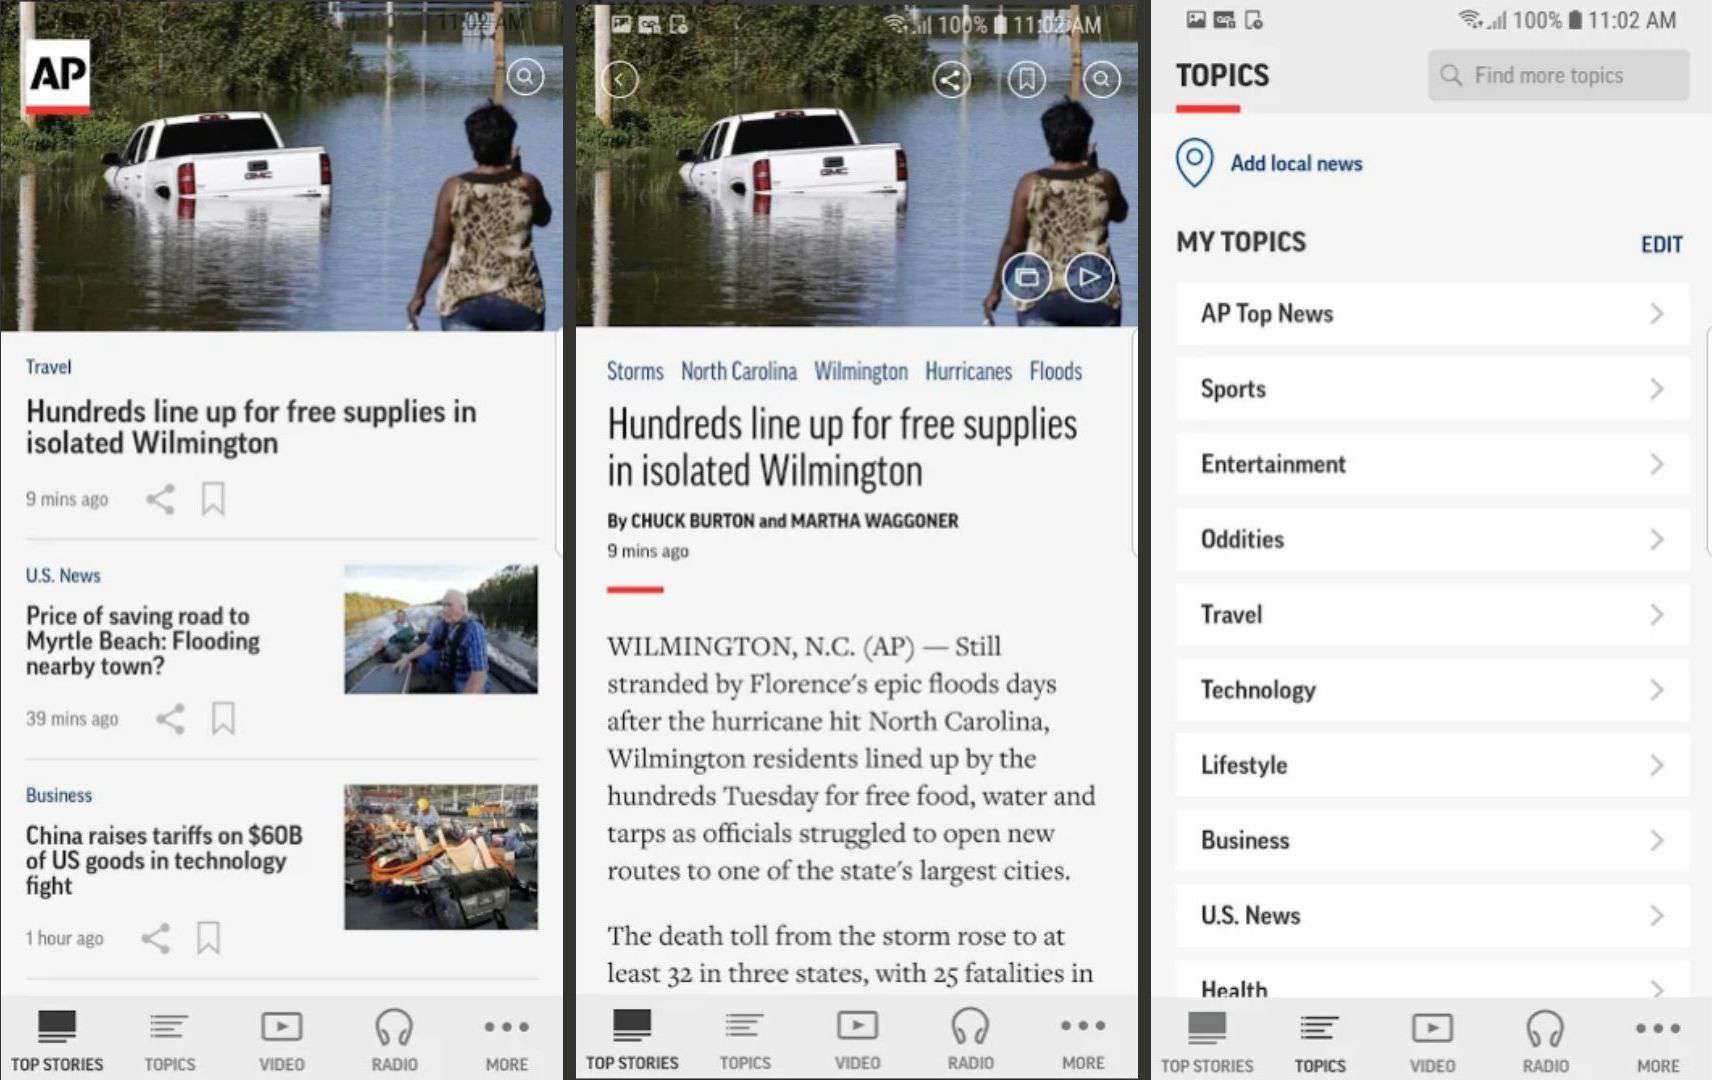 Three screenshots of AP News for Android.